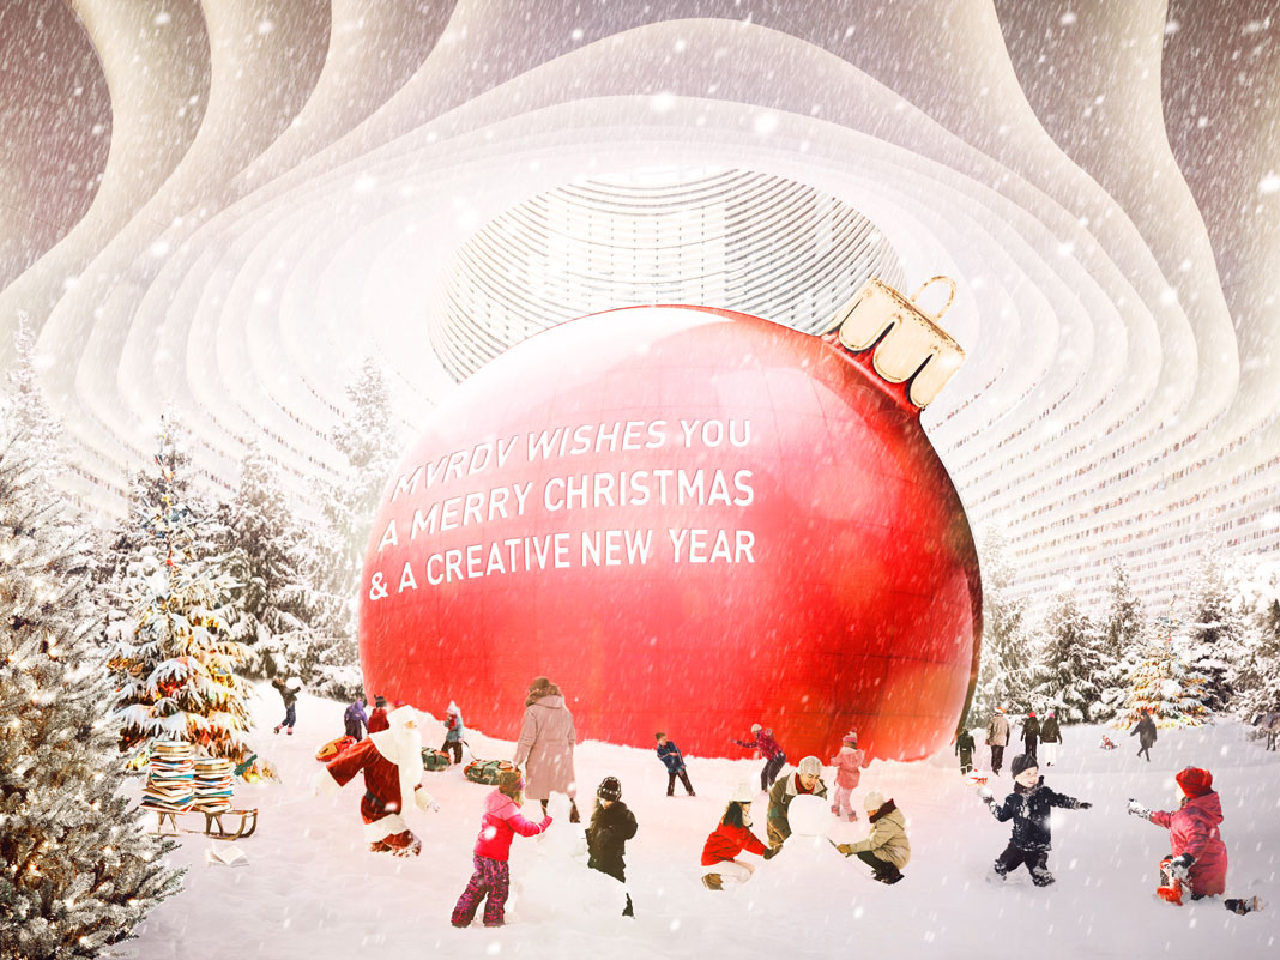 MVRDV wishes you a Merry Christmas and a Creative New Year!